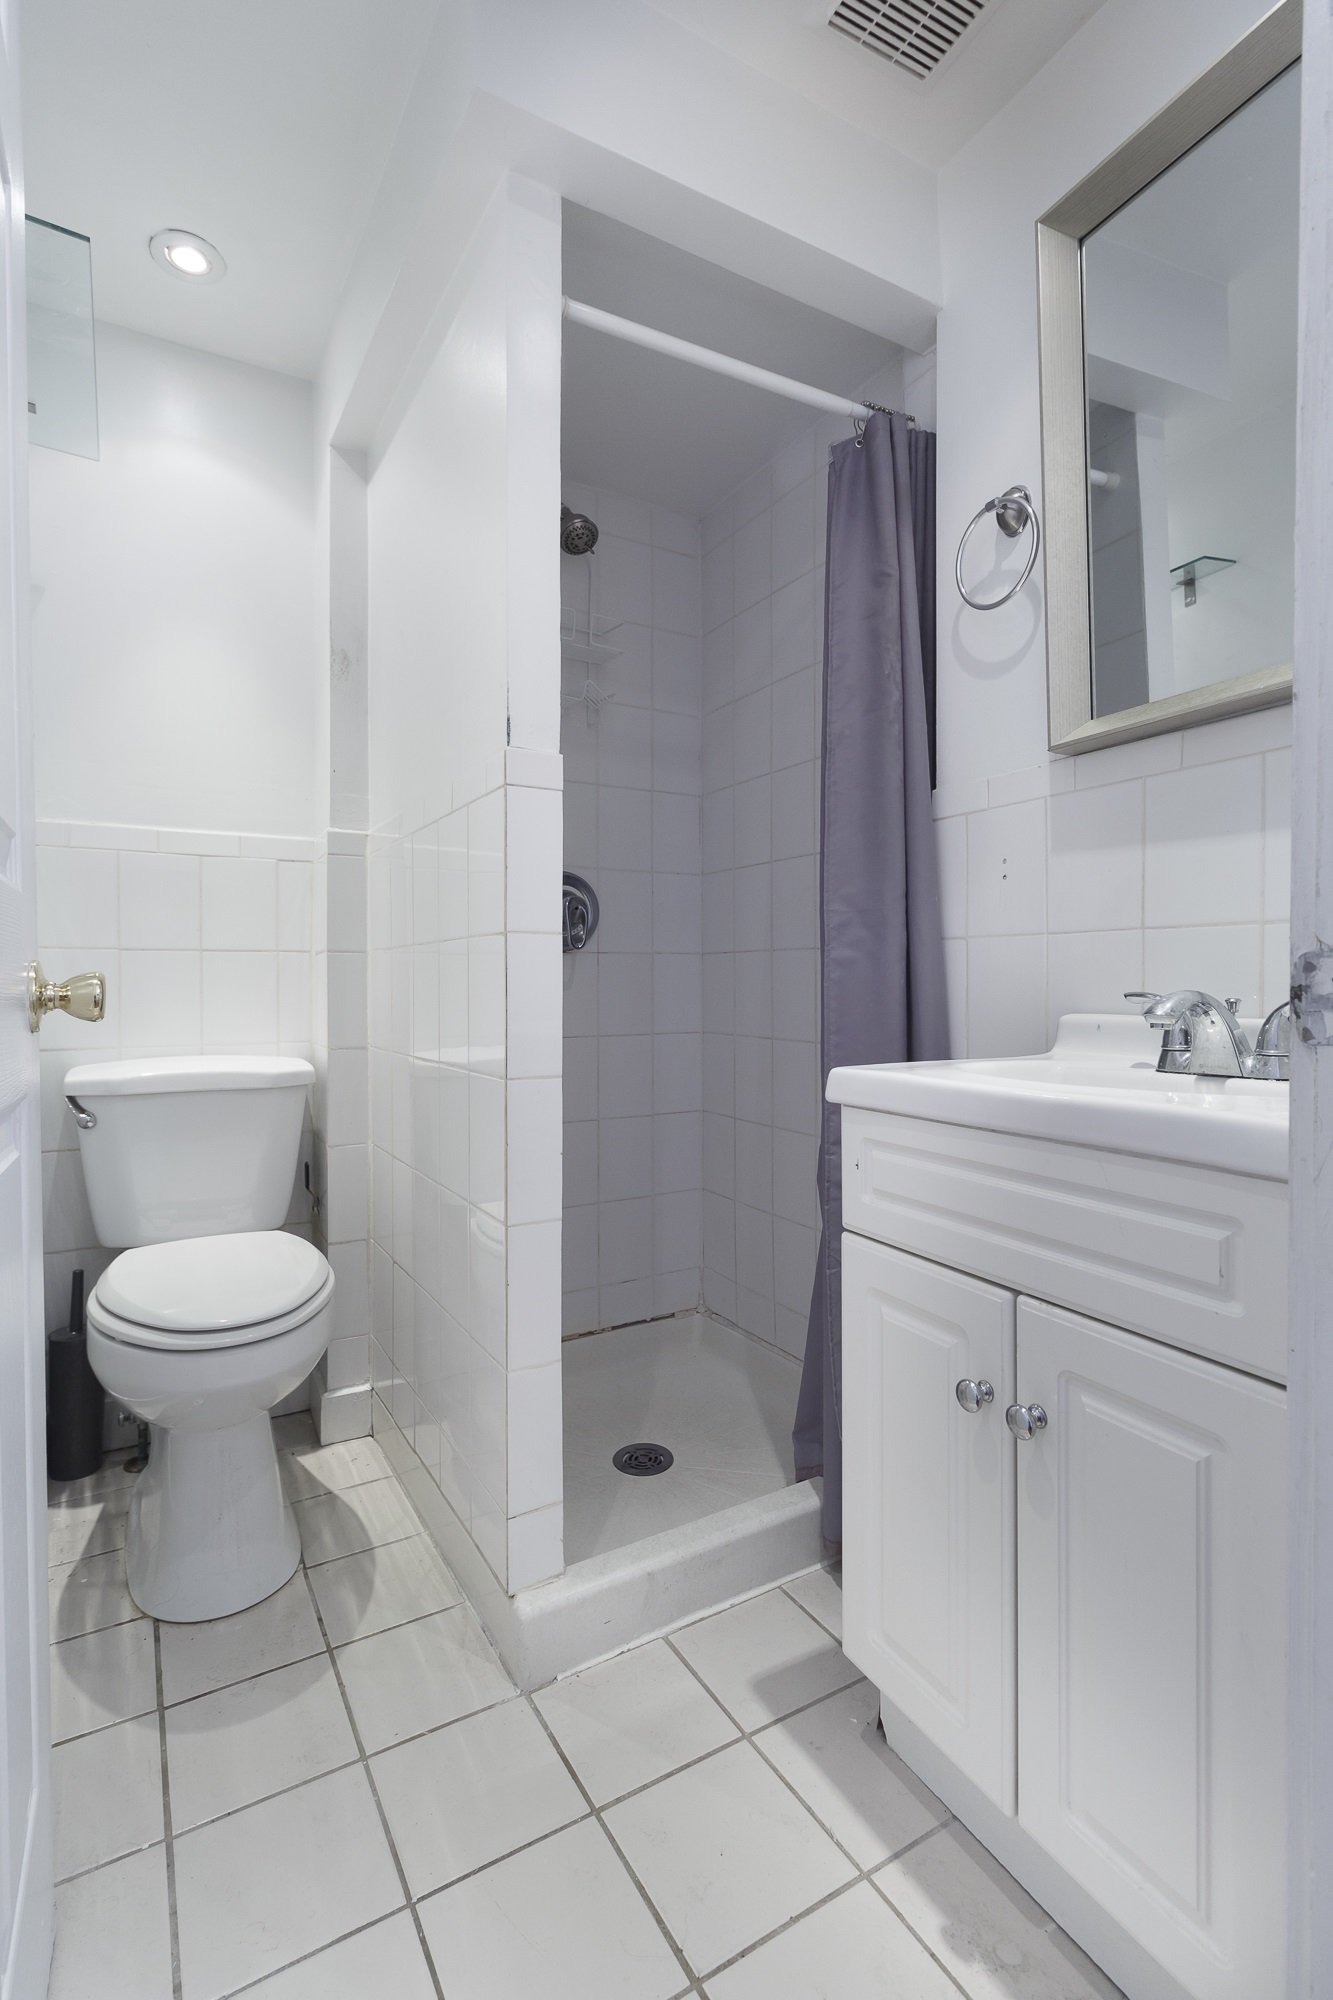 New york ny nyc apartment real estate interior photographer one bedroom midtown east manhattan bathroom